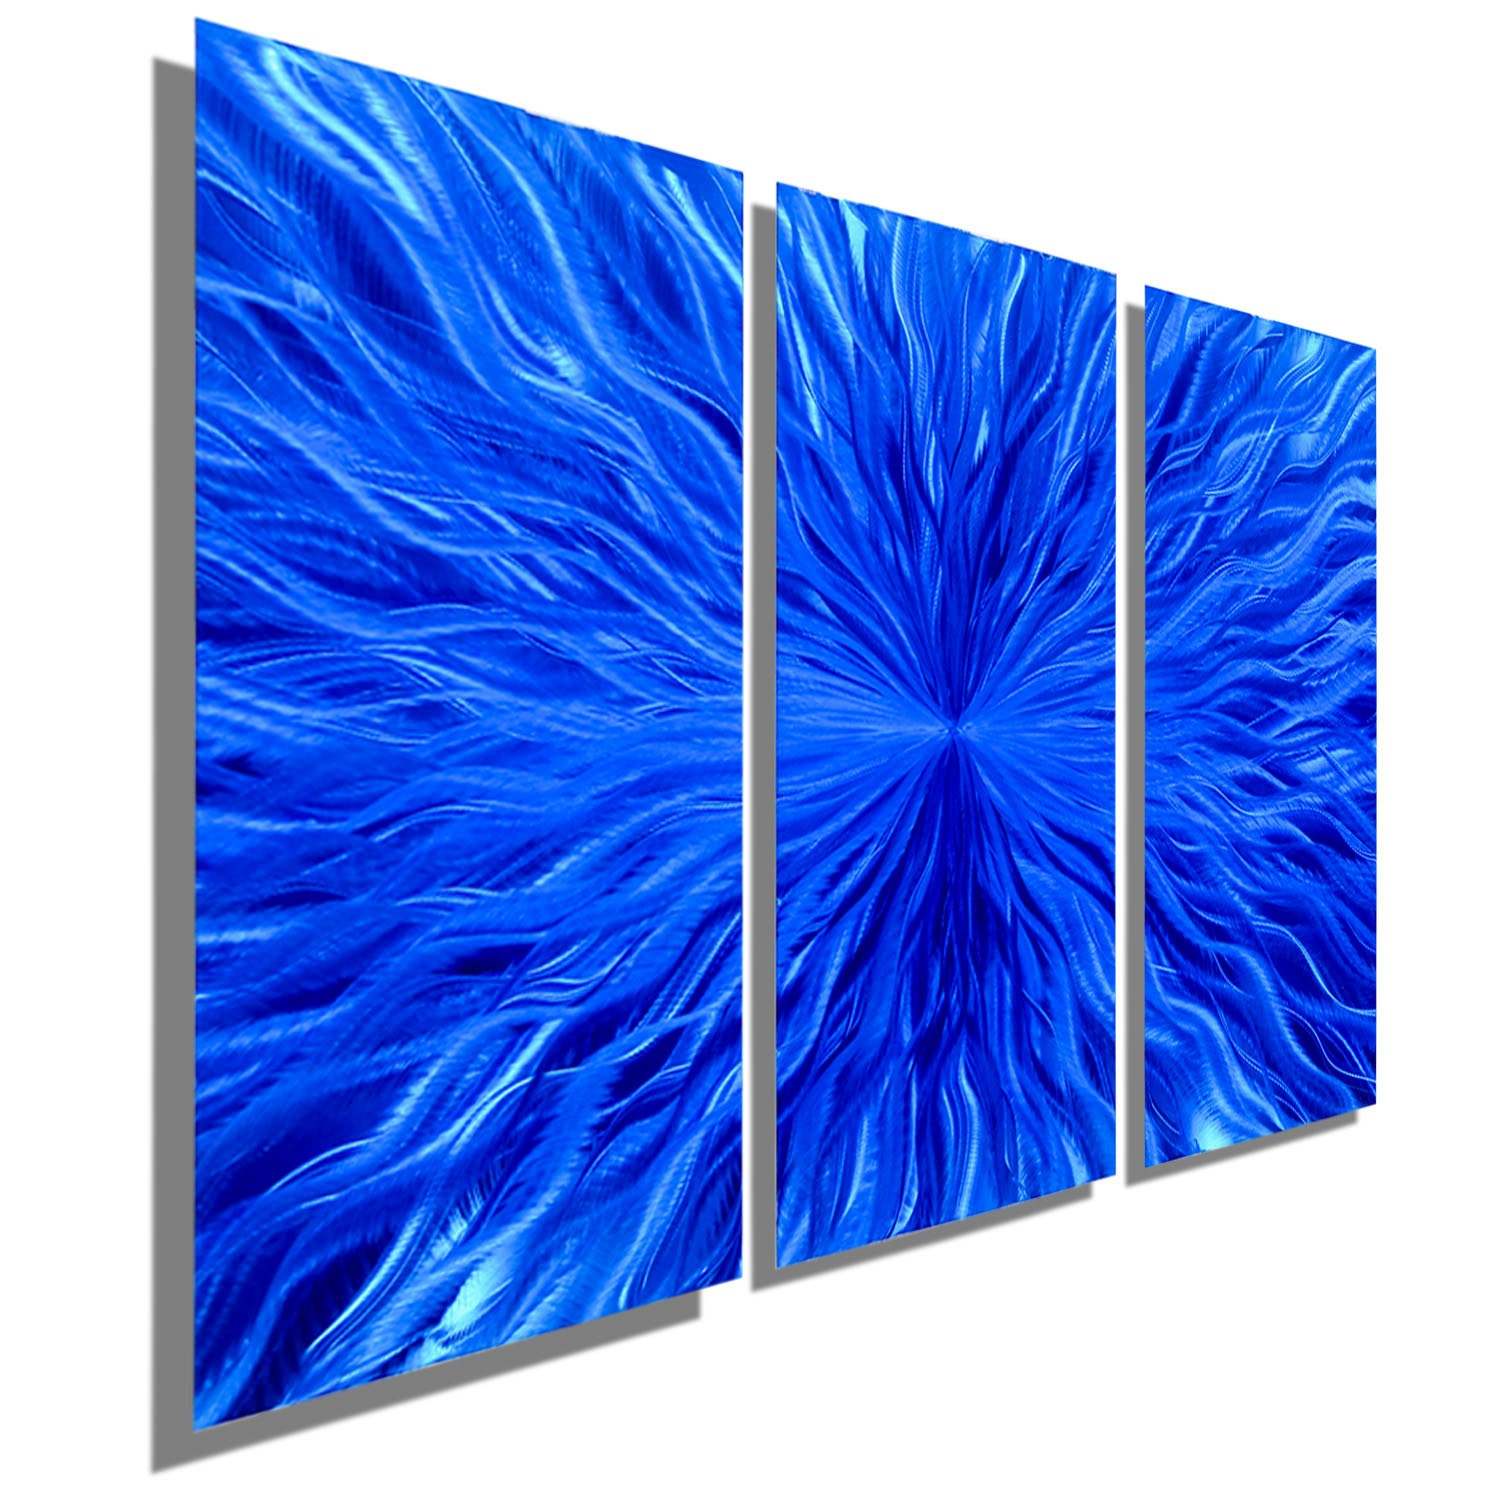 Blue Metal Wall Art Impressive Multi Panel Contemporary Metal Wall Decor In Blue Modern Decorating Inspiration